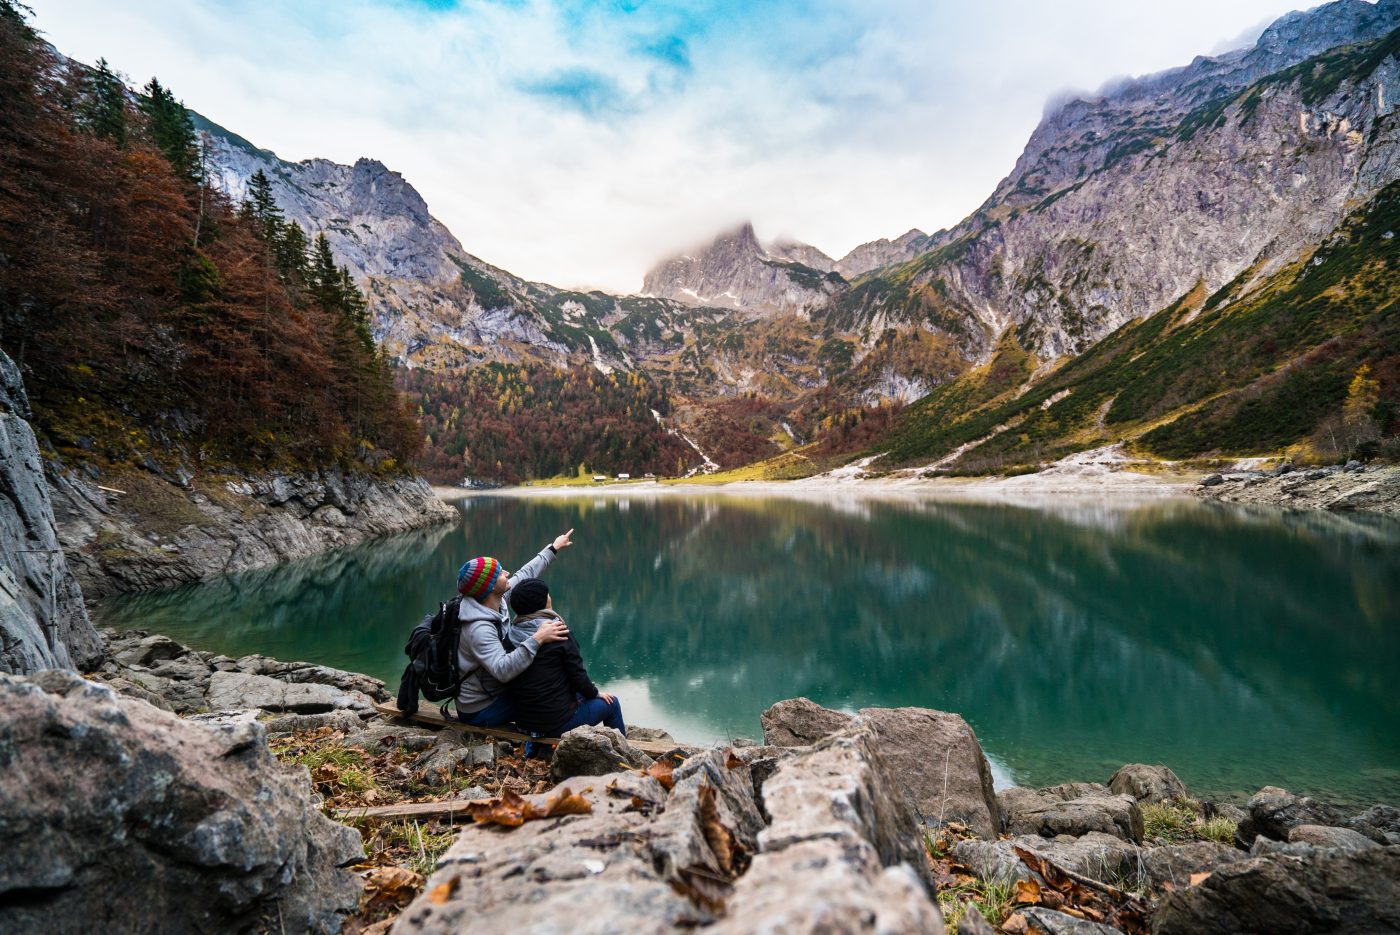 me time during a couples trip: two people at the lake enjoying the mountains